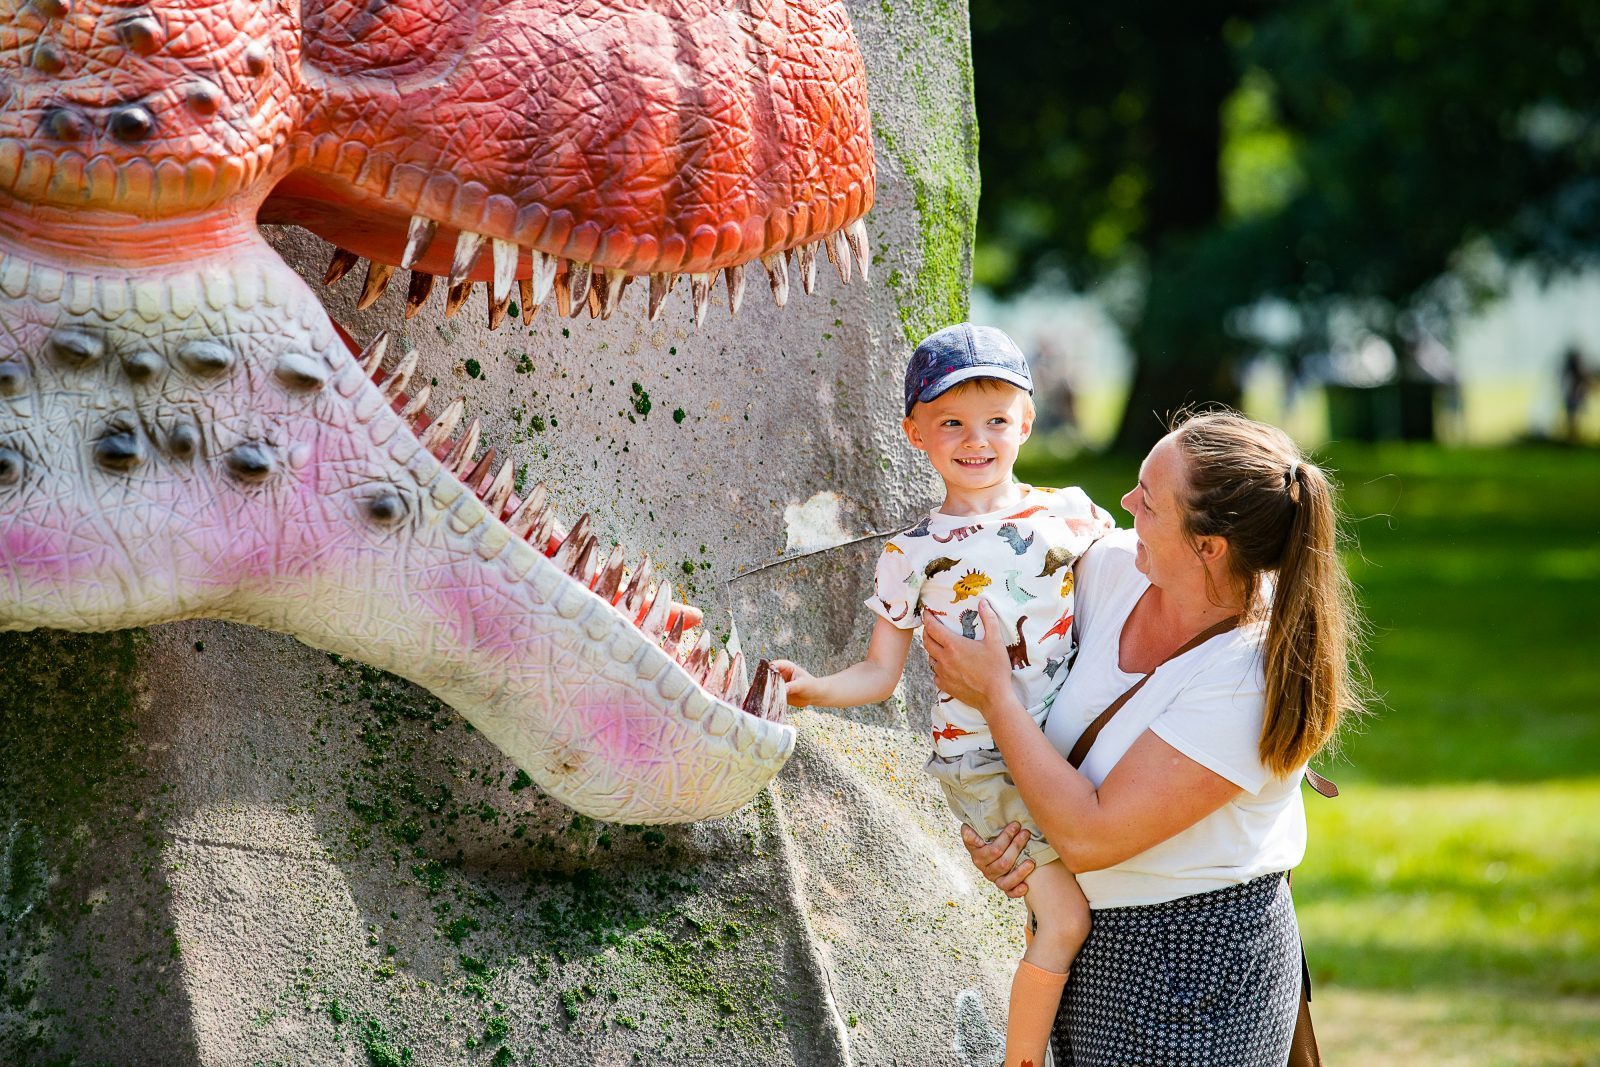 You can get 25% off tickets for the last week of Dino Kingdom in Manchester, The Manc